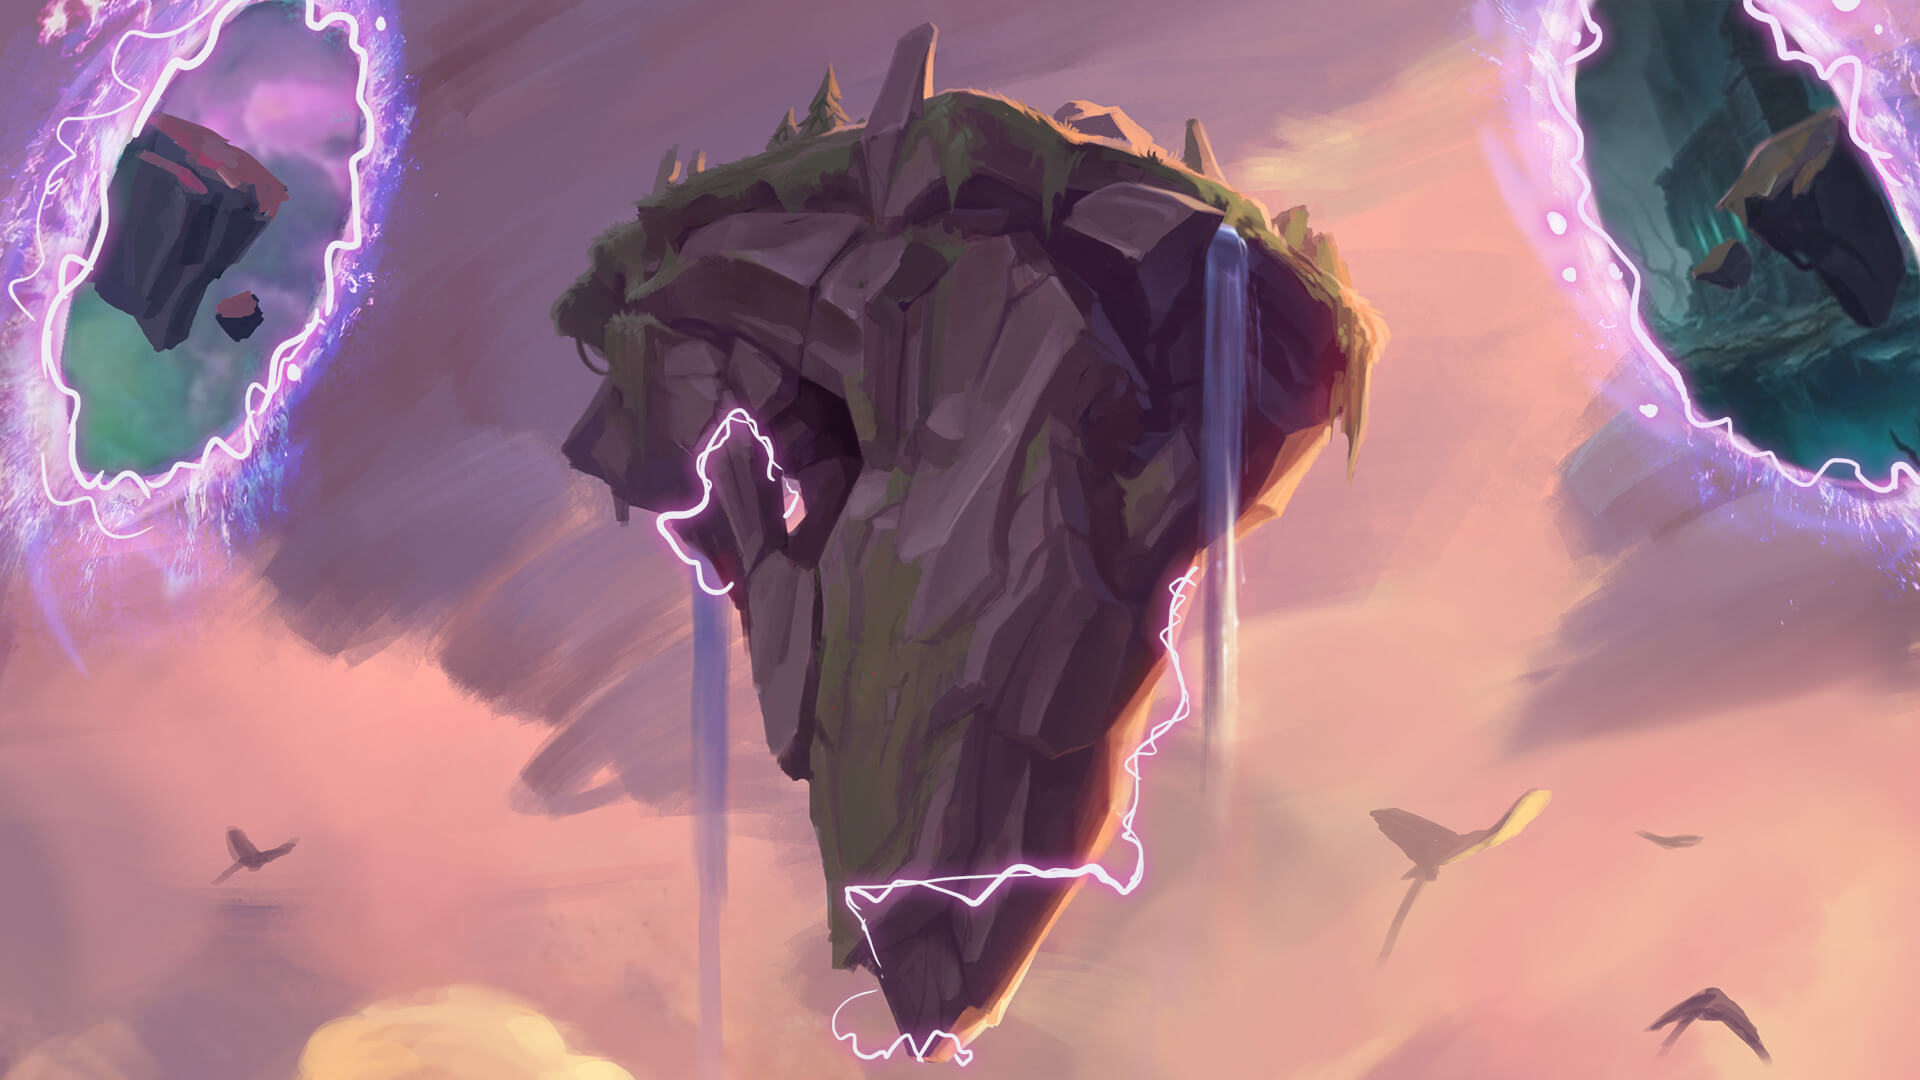 A floating rock with two portals on the side. Key art for Teamfight Tactics